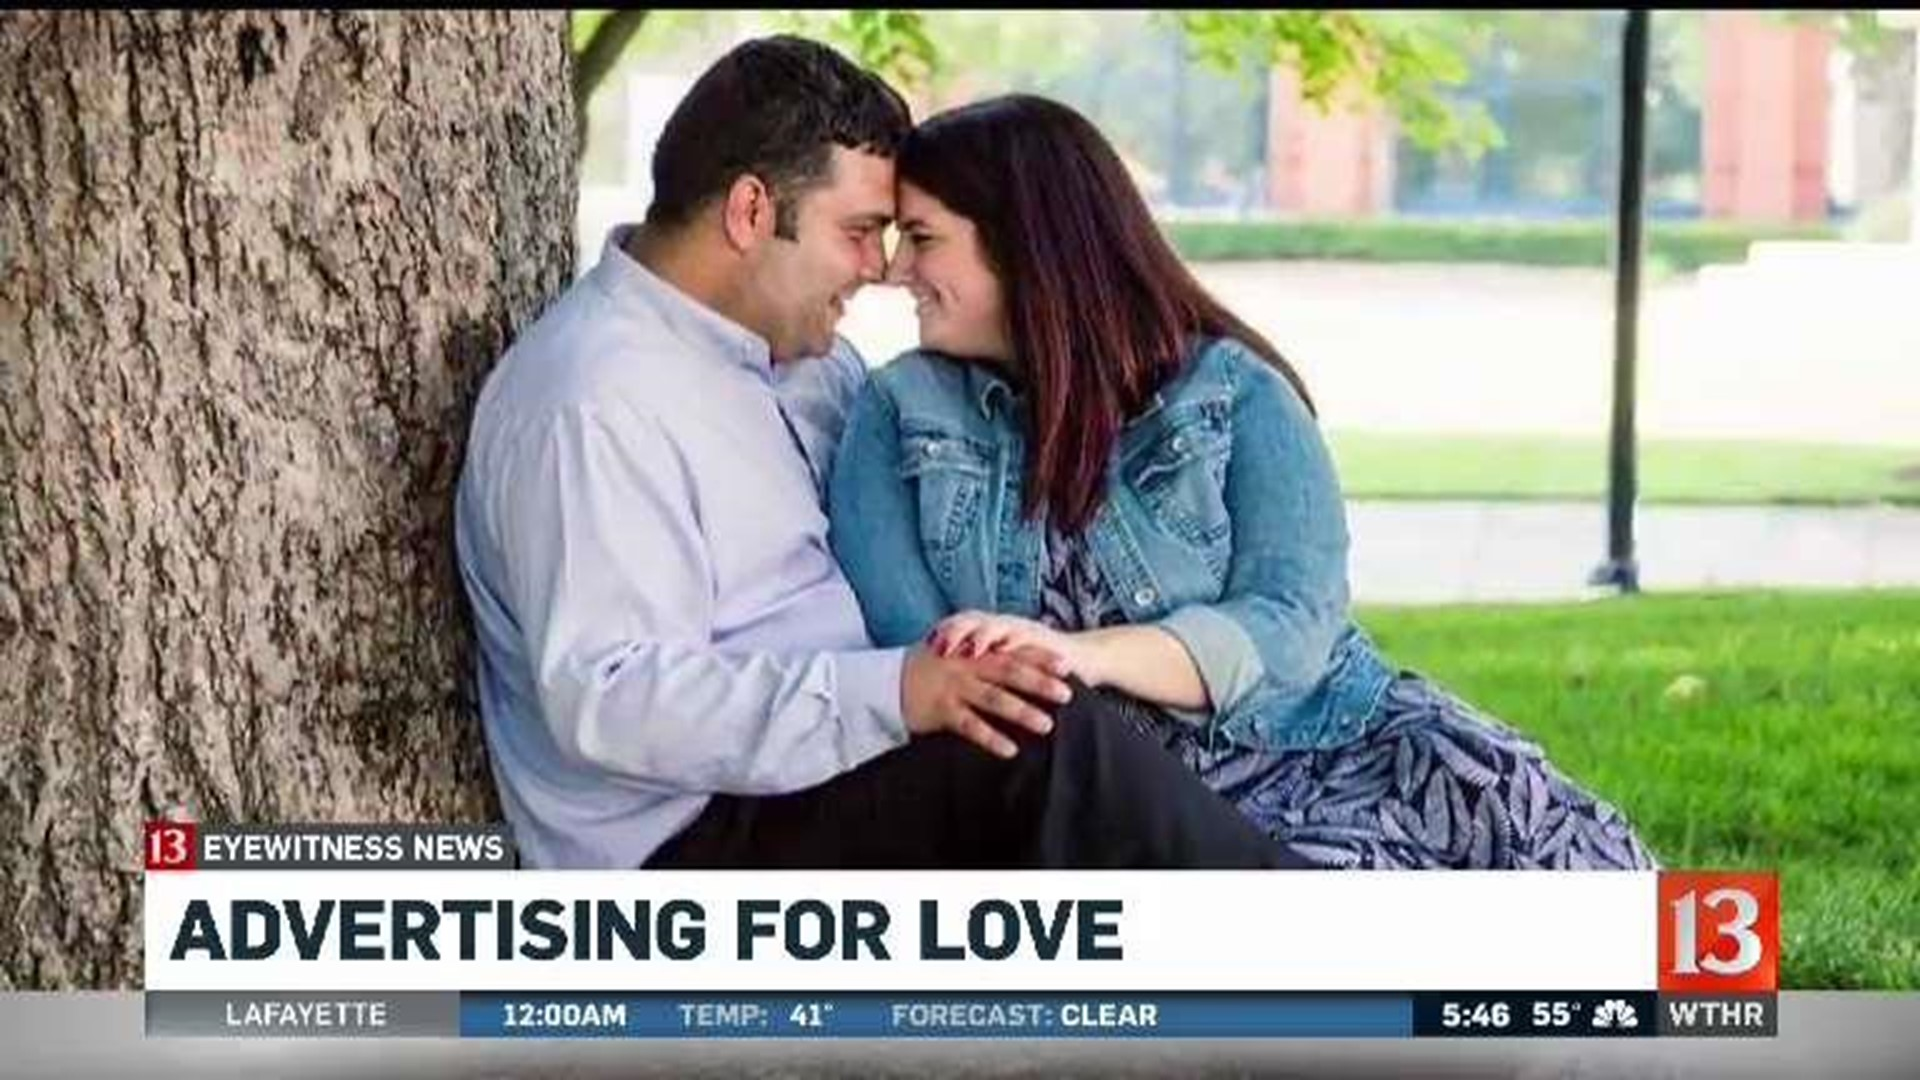 AD MAN DATING SITE